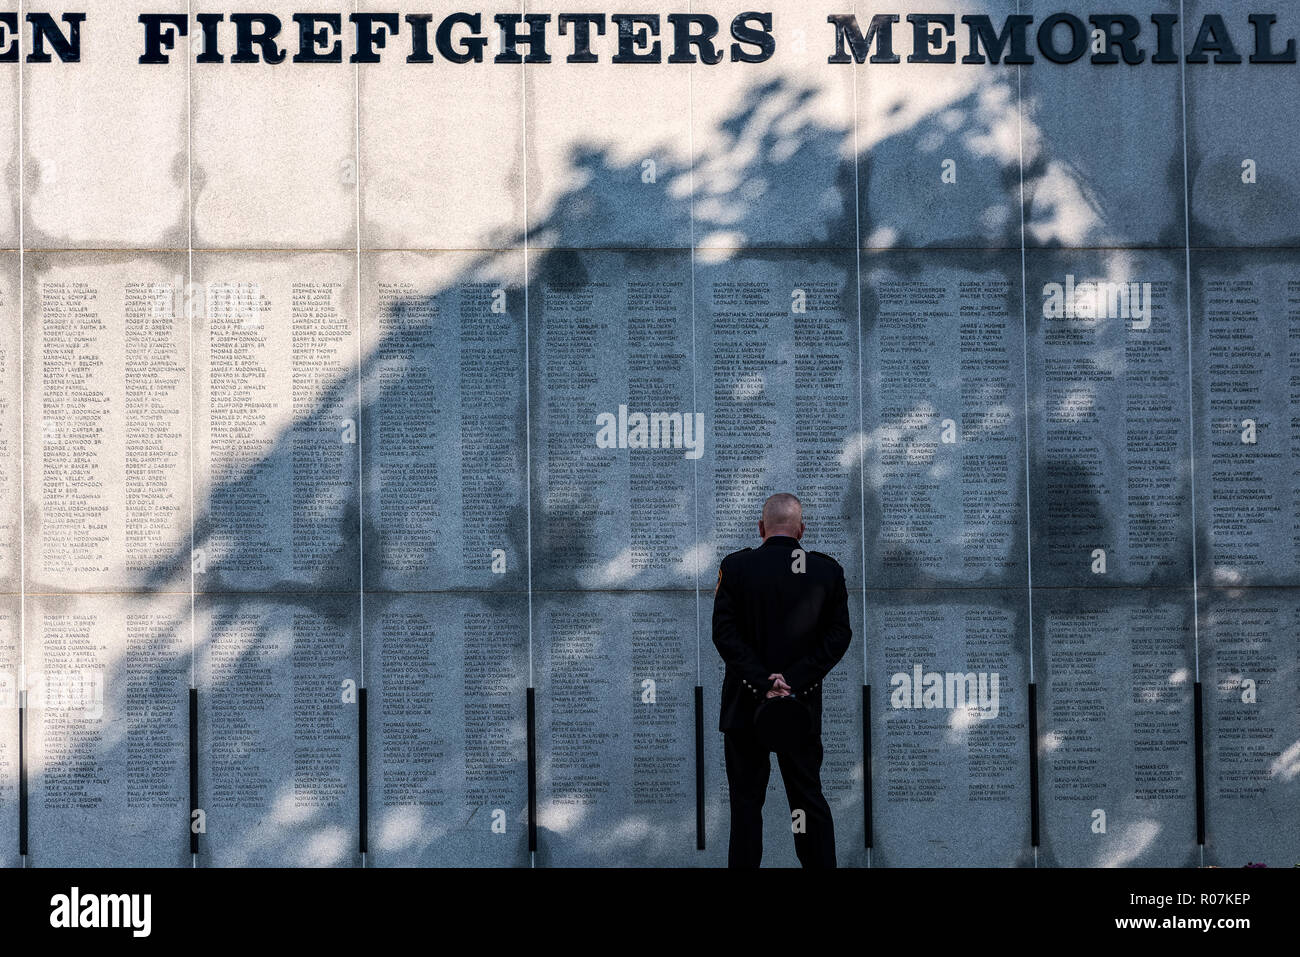 Firefighter reflects on lost collegues at the New York Firefighters Memorial, Albamy, New York, USA. - Stock Image